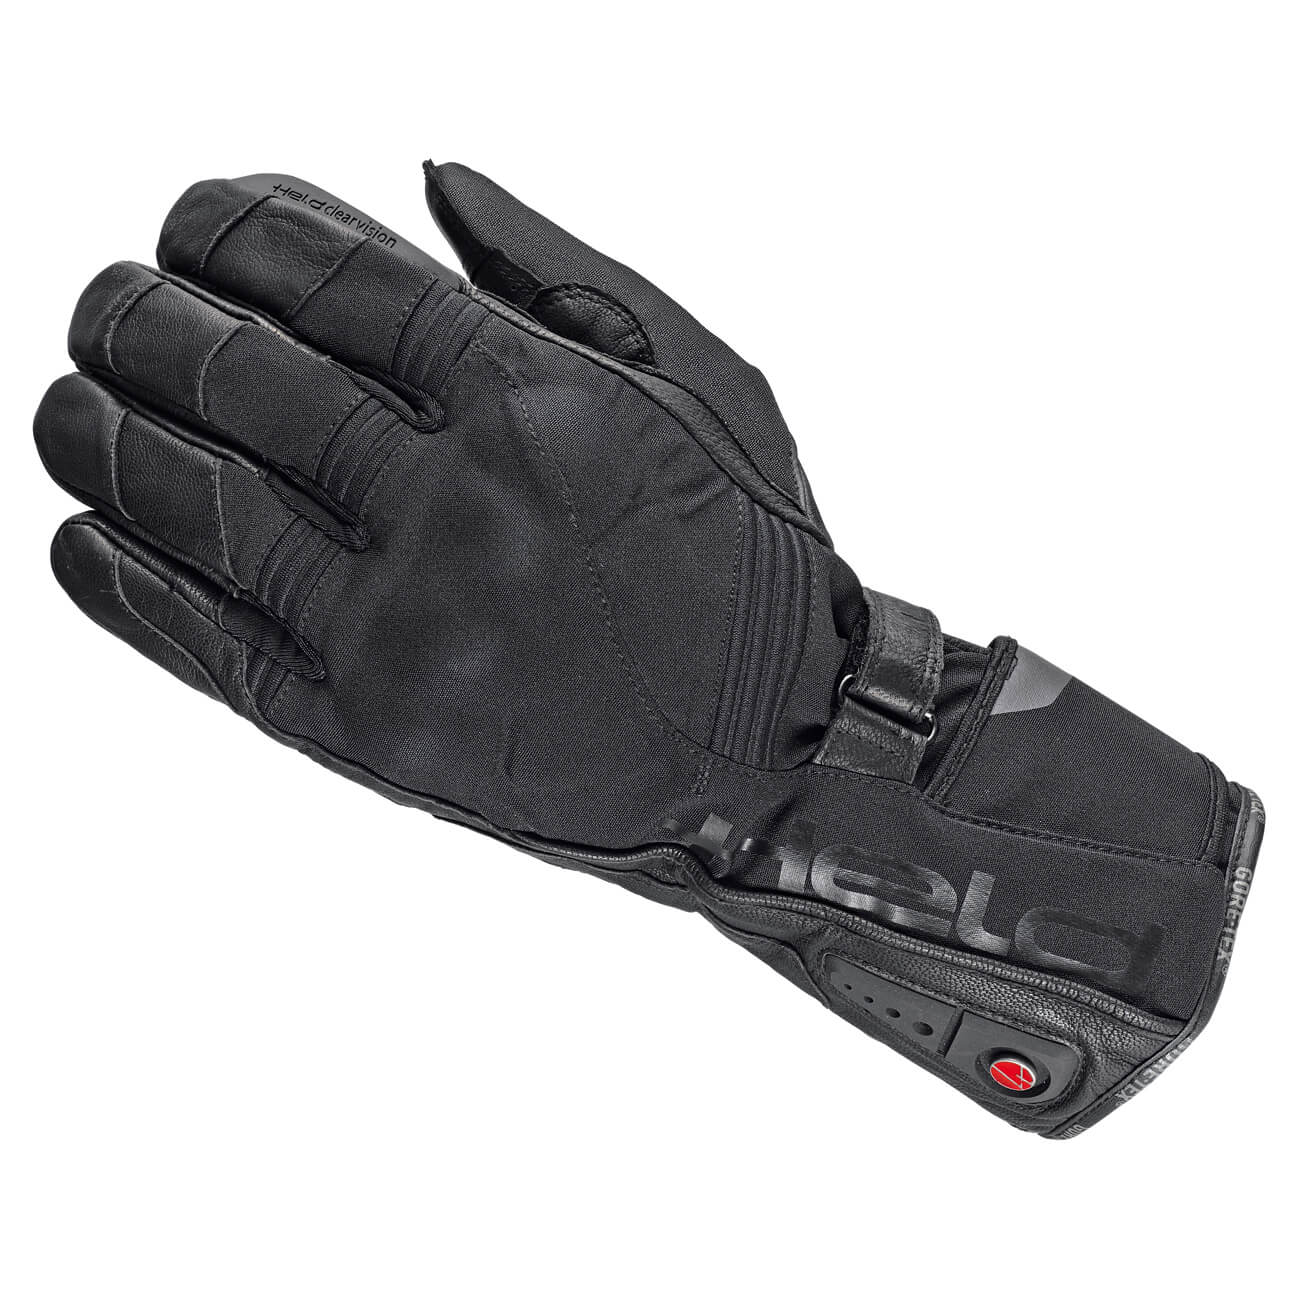 GORE-TEX® 2in1 rukavice Solid Dry empty 52363a6552